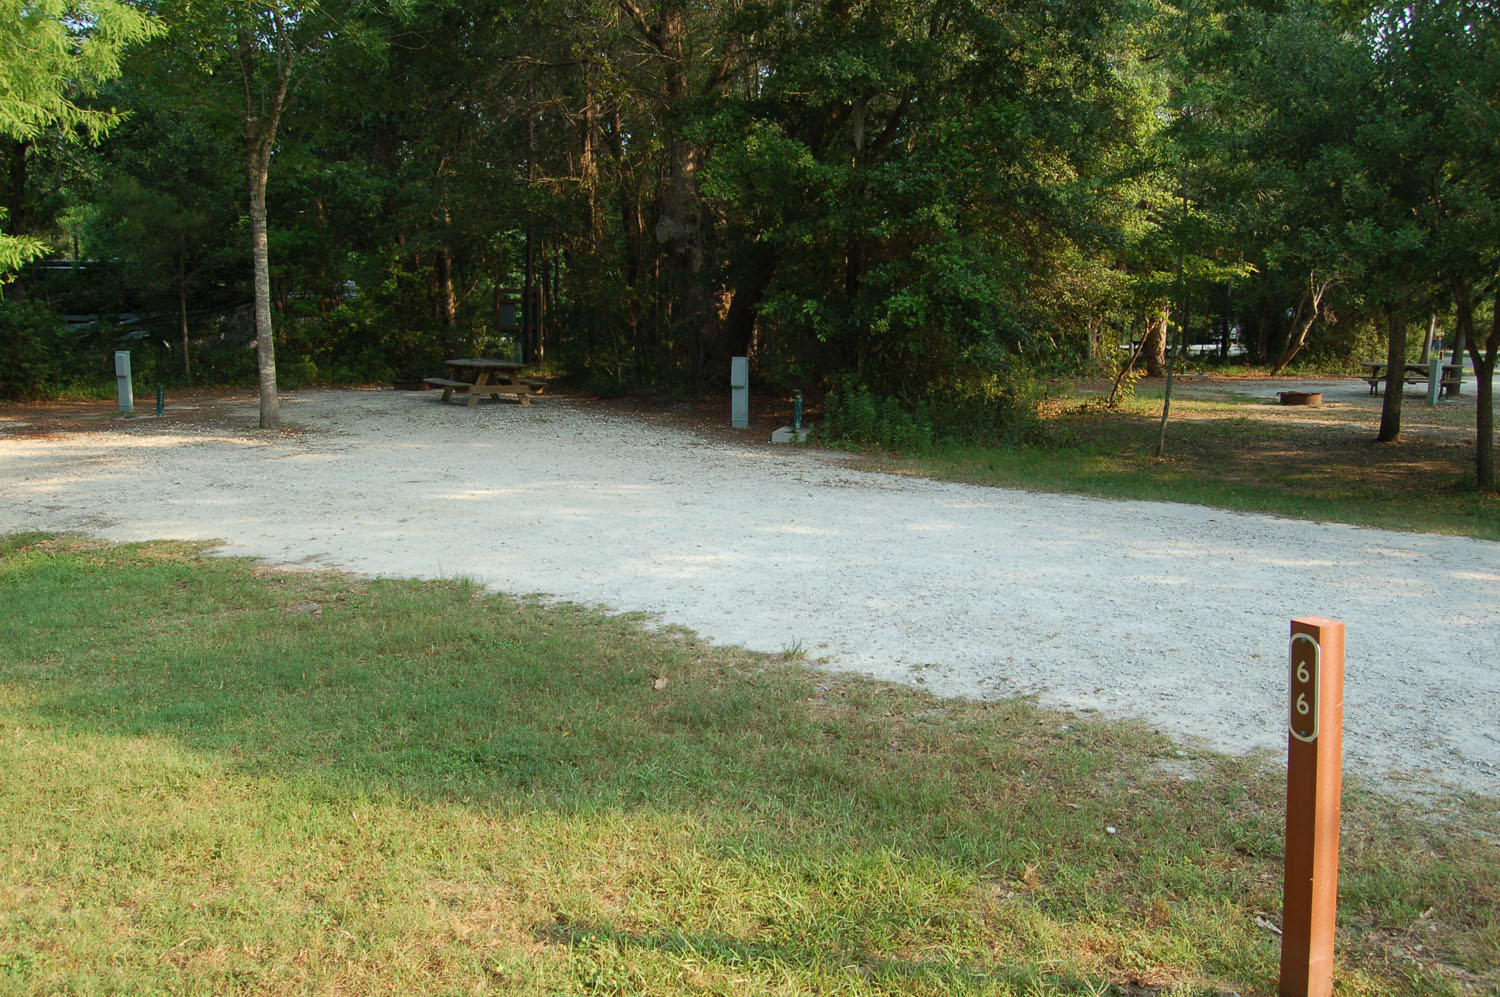 Image of campsite #66 at the Campground at James Island County Park